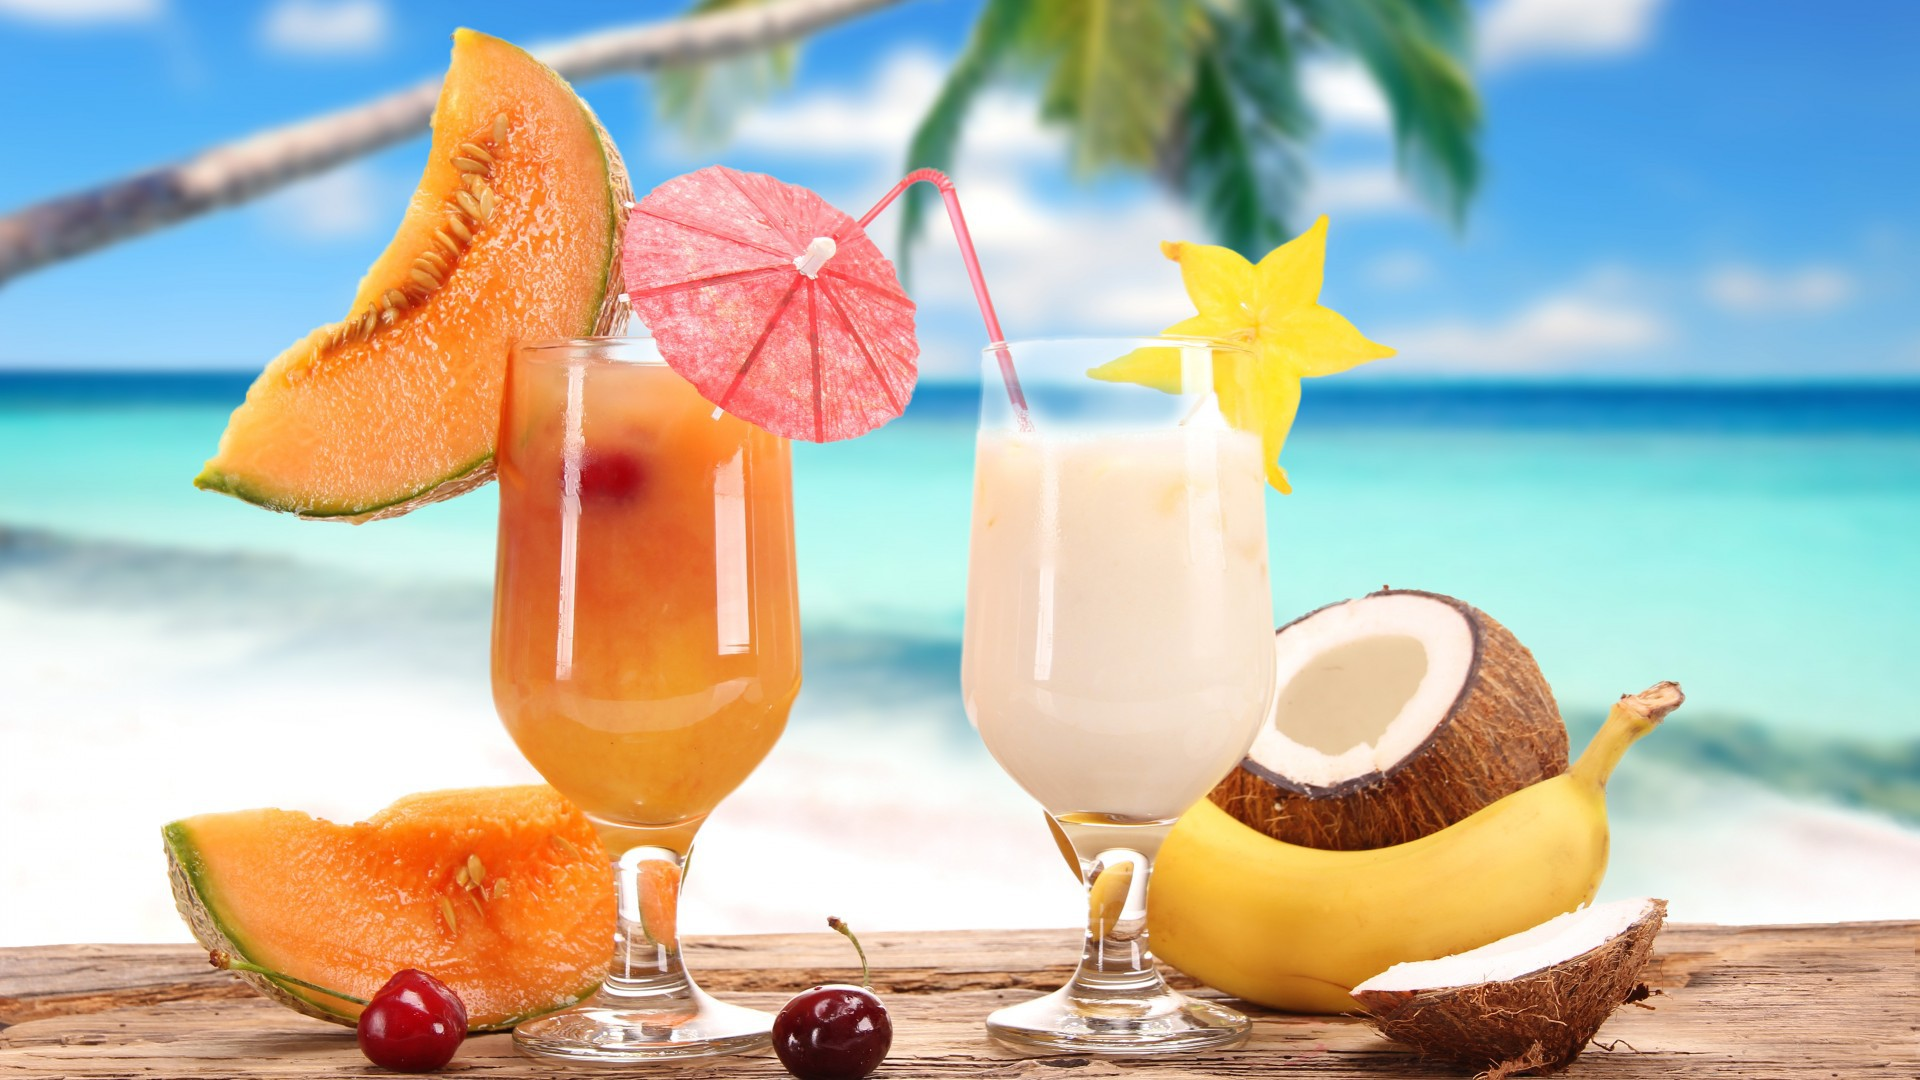 Image result for tropical food and drinks